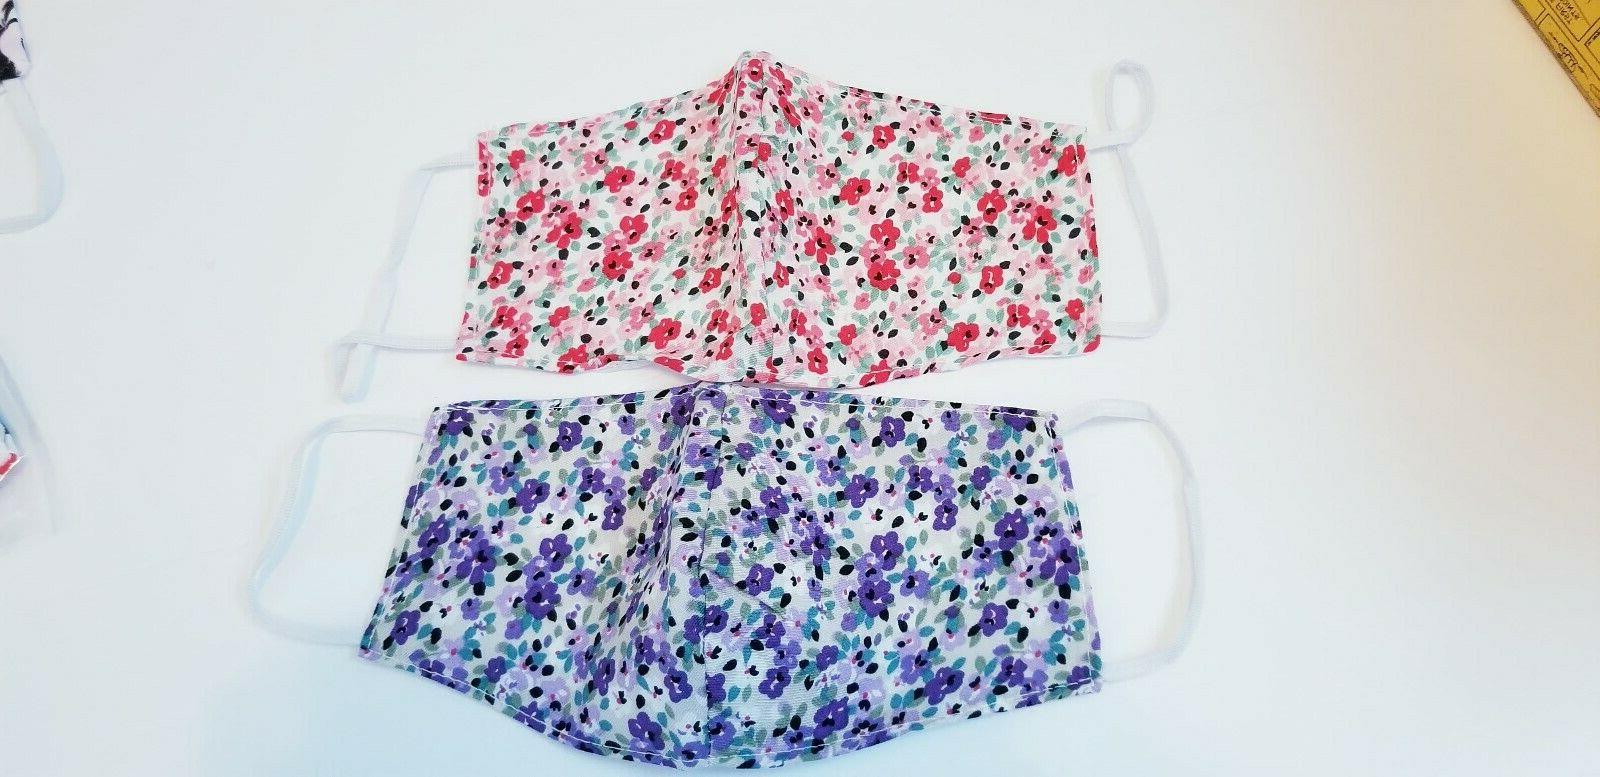 2 pack HANDMADE FASHION FACE COVER MASK garden floral patter